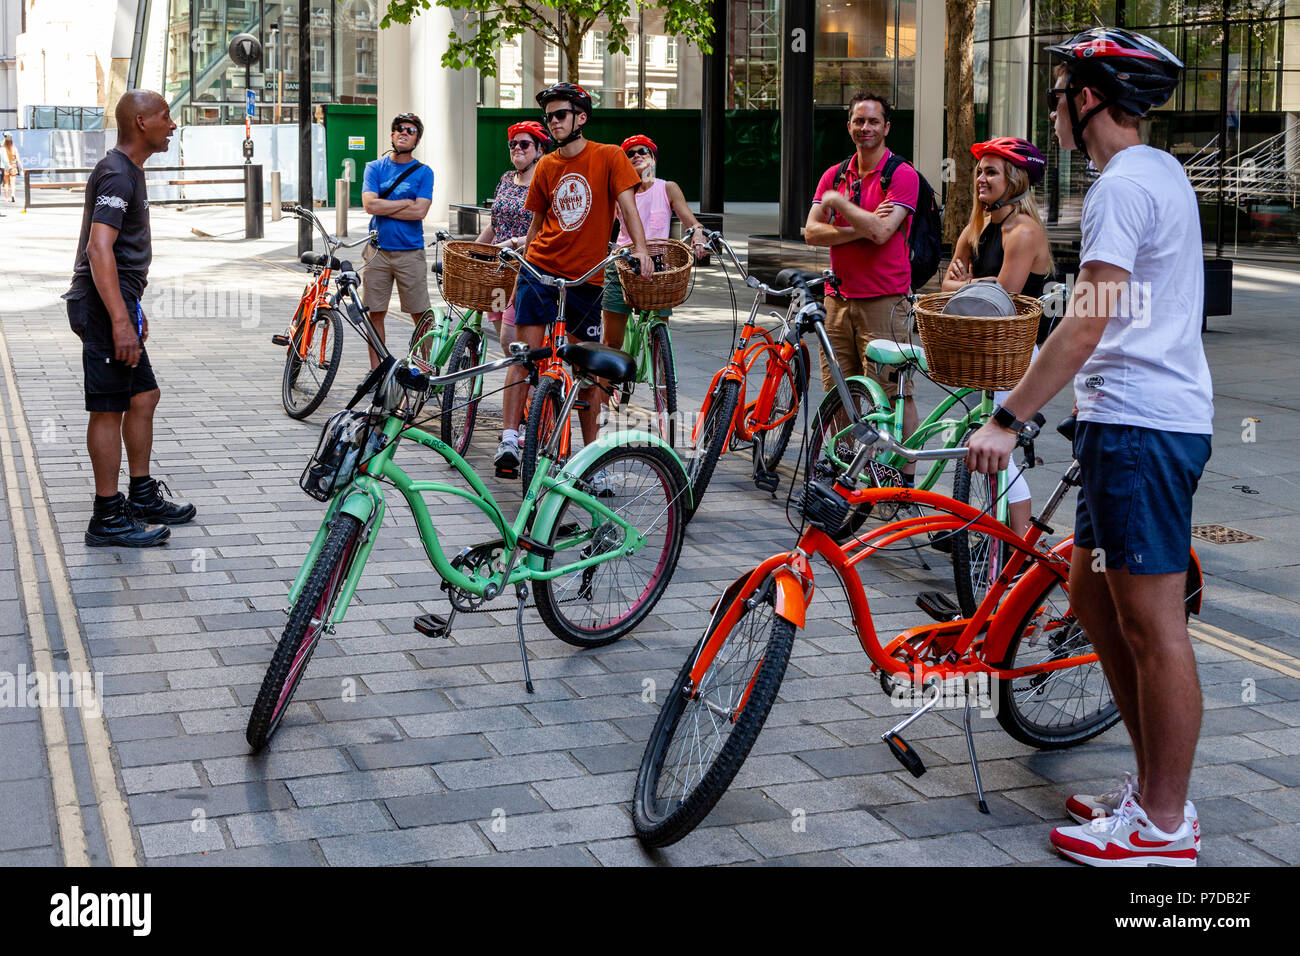 Tourists Stop In 'The City' During A Bicycle Tour Of London Sights, London, United Kingdom - Stock Image